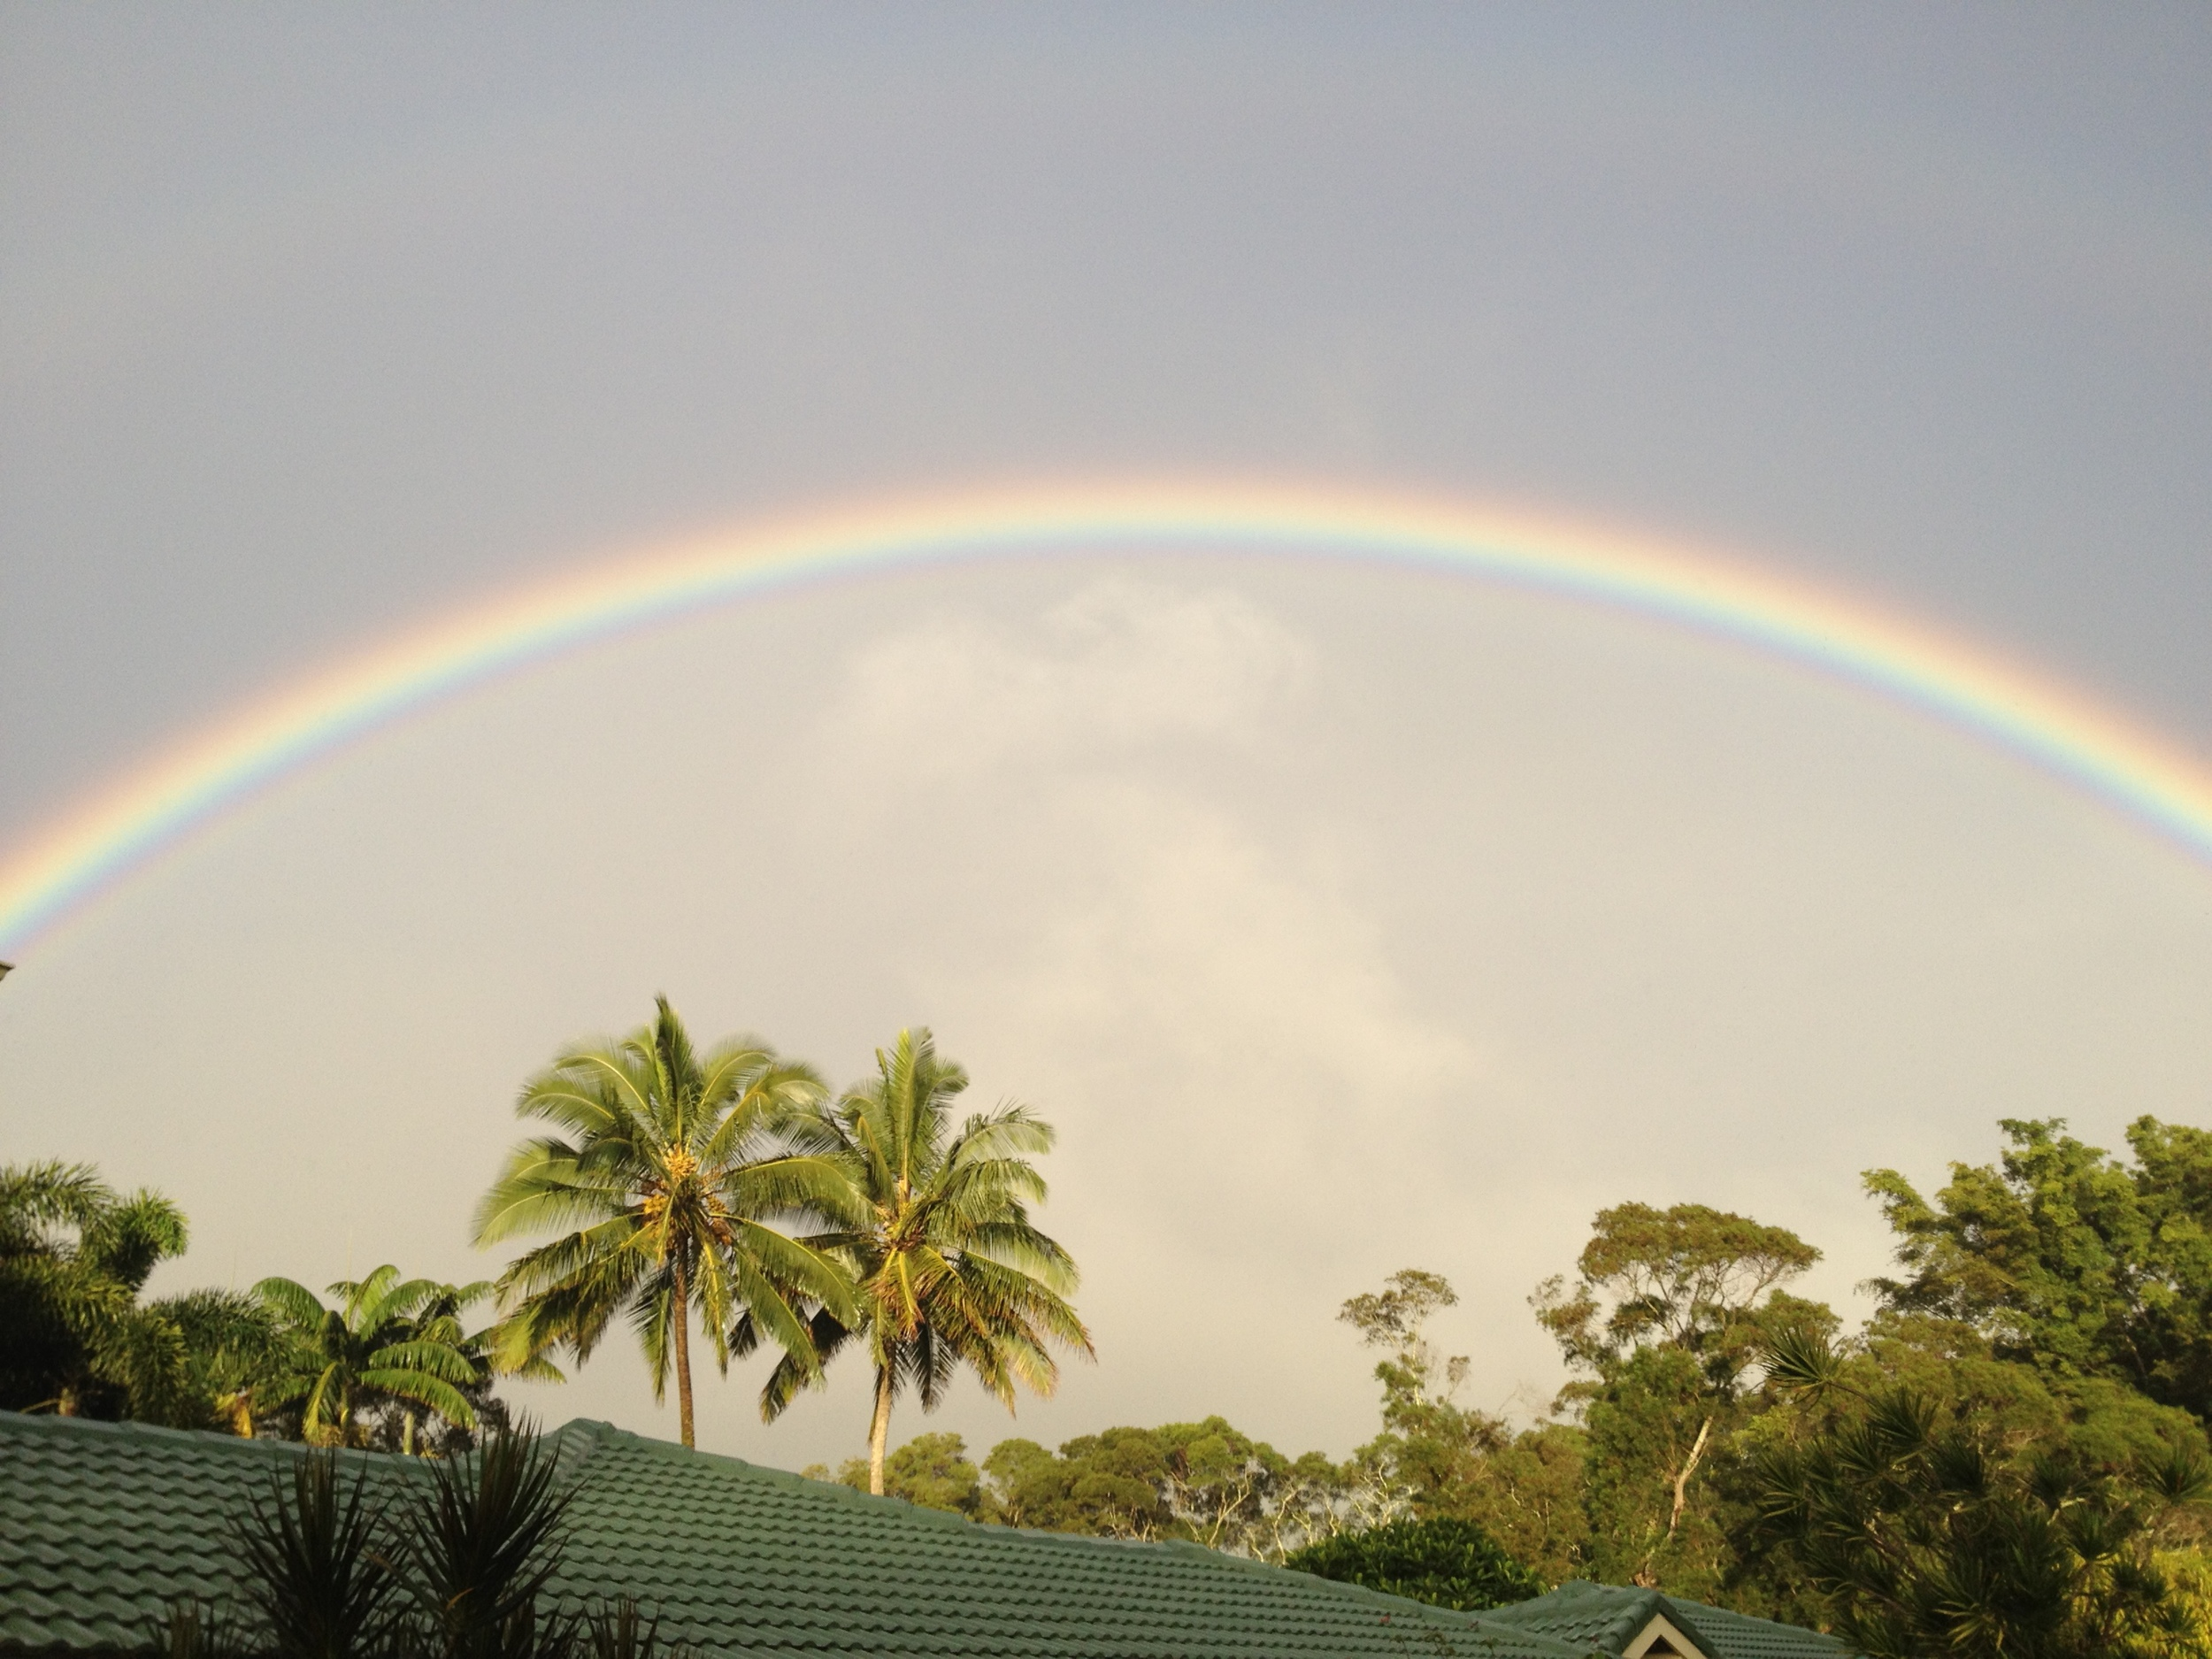 Rainbow over SATTVA Ayurvedic Clinic, Kauai, Hawaii